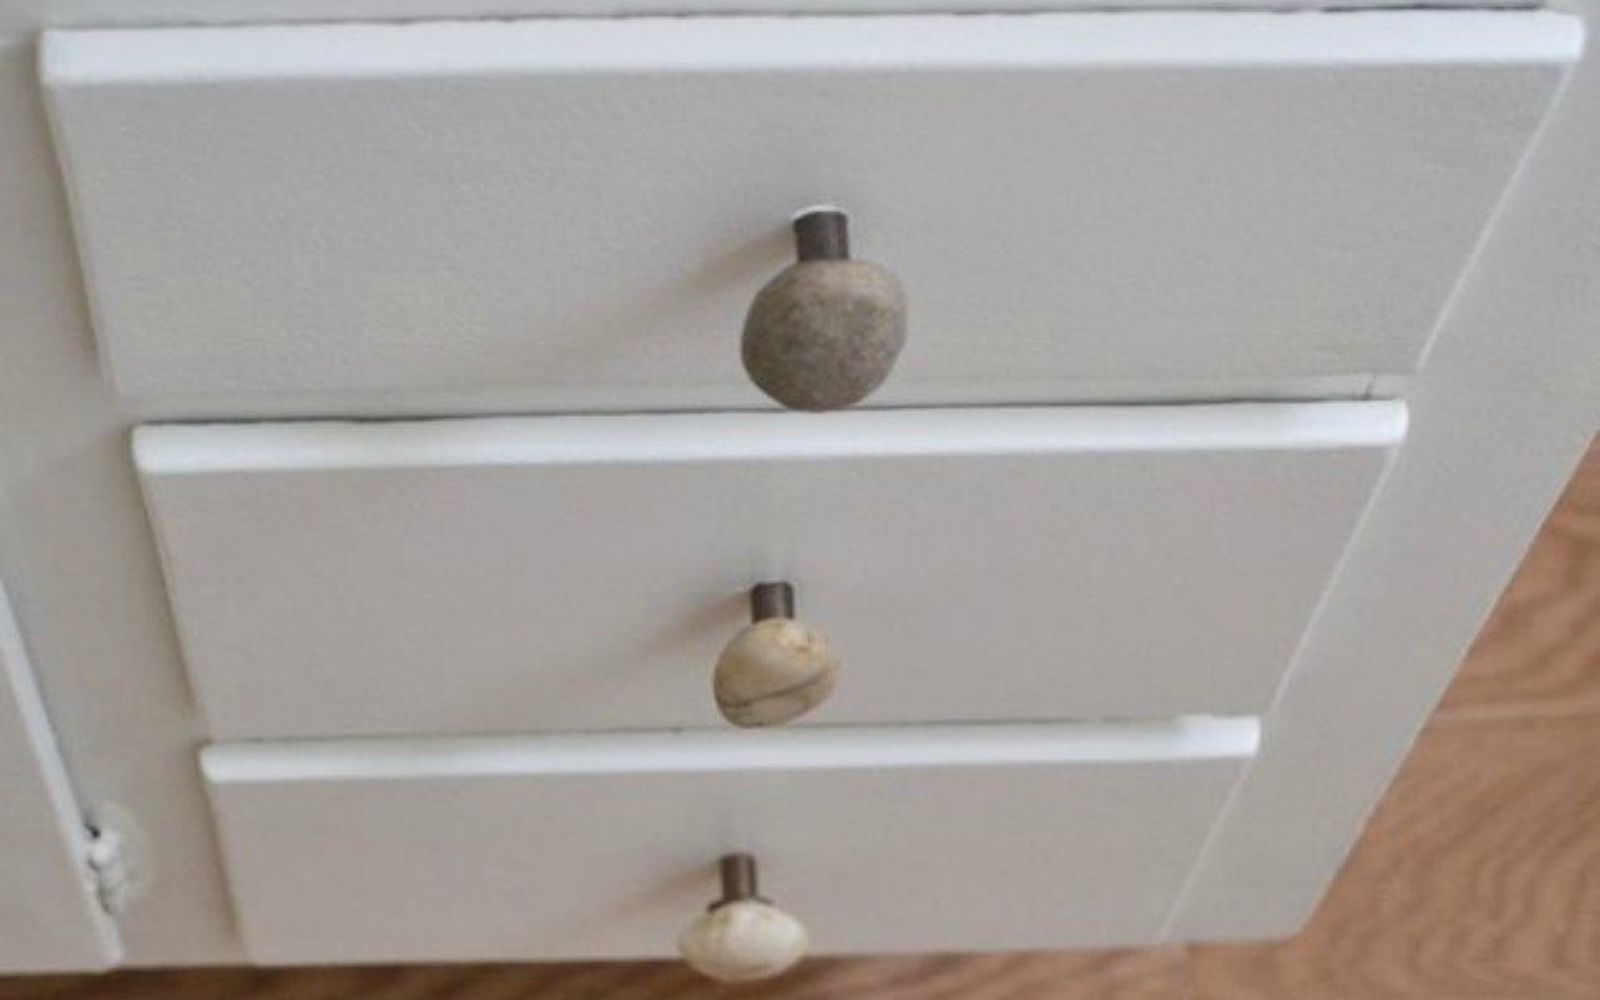 s 11 impressive ways to update your home with stone, concrete masonry, home decor, Replace your knobs with pretty pebbles